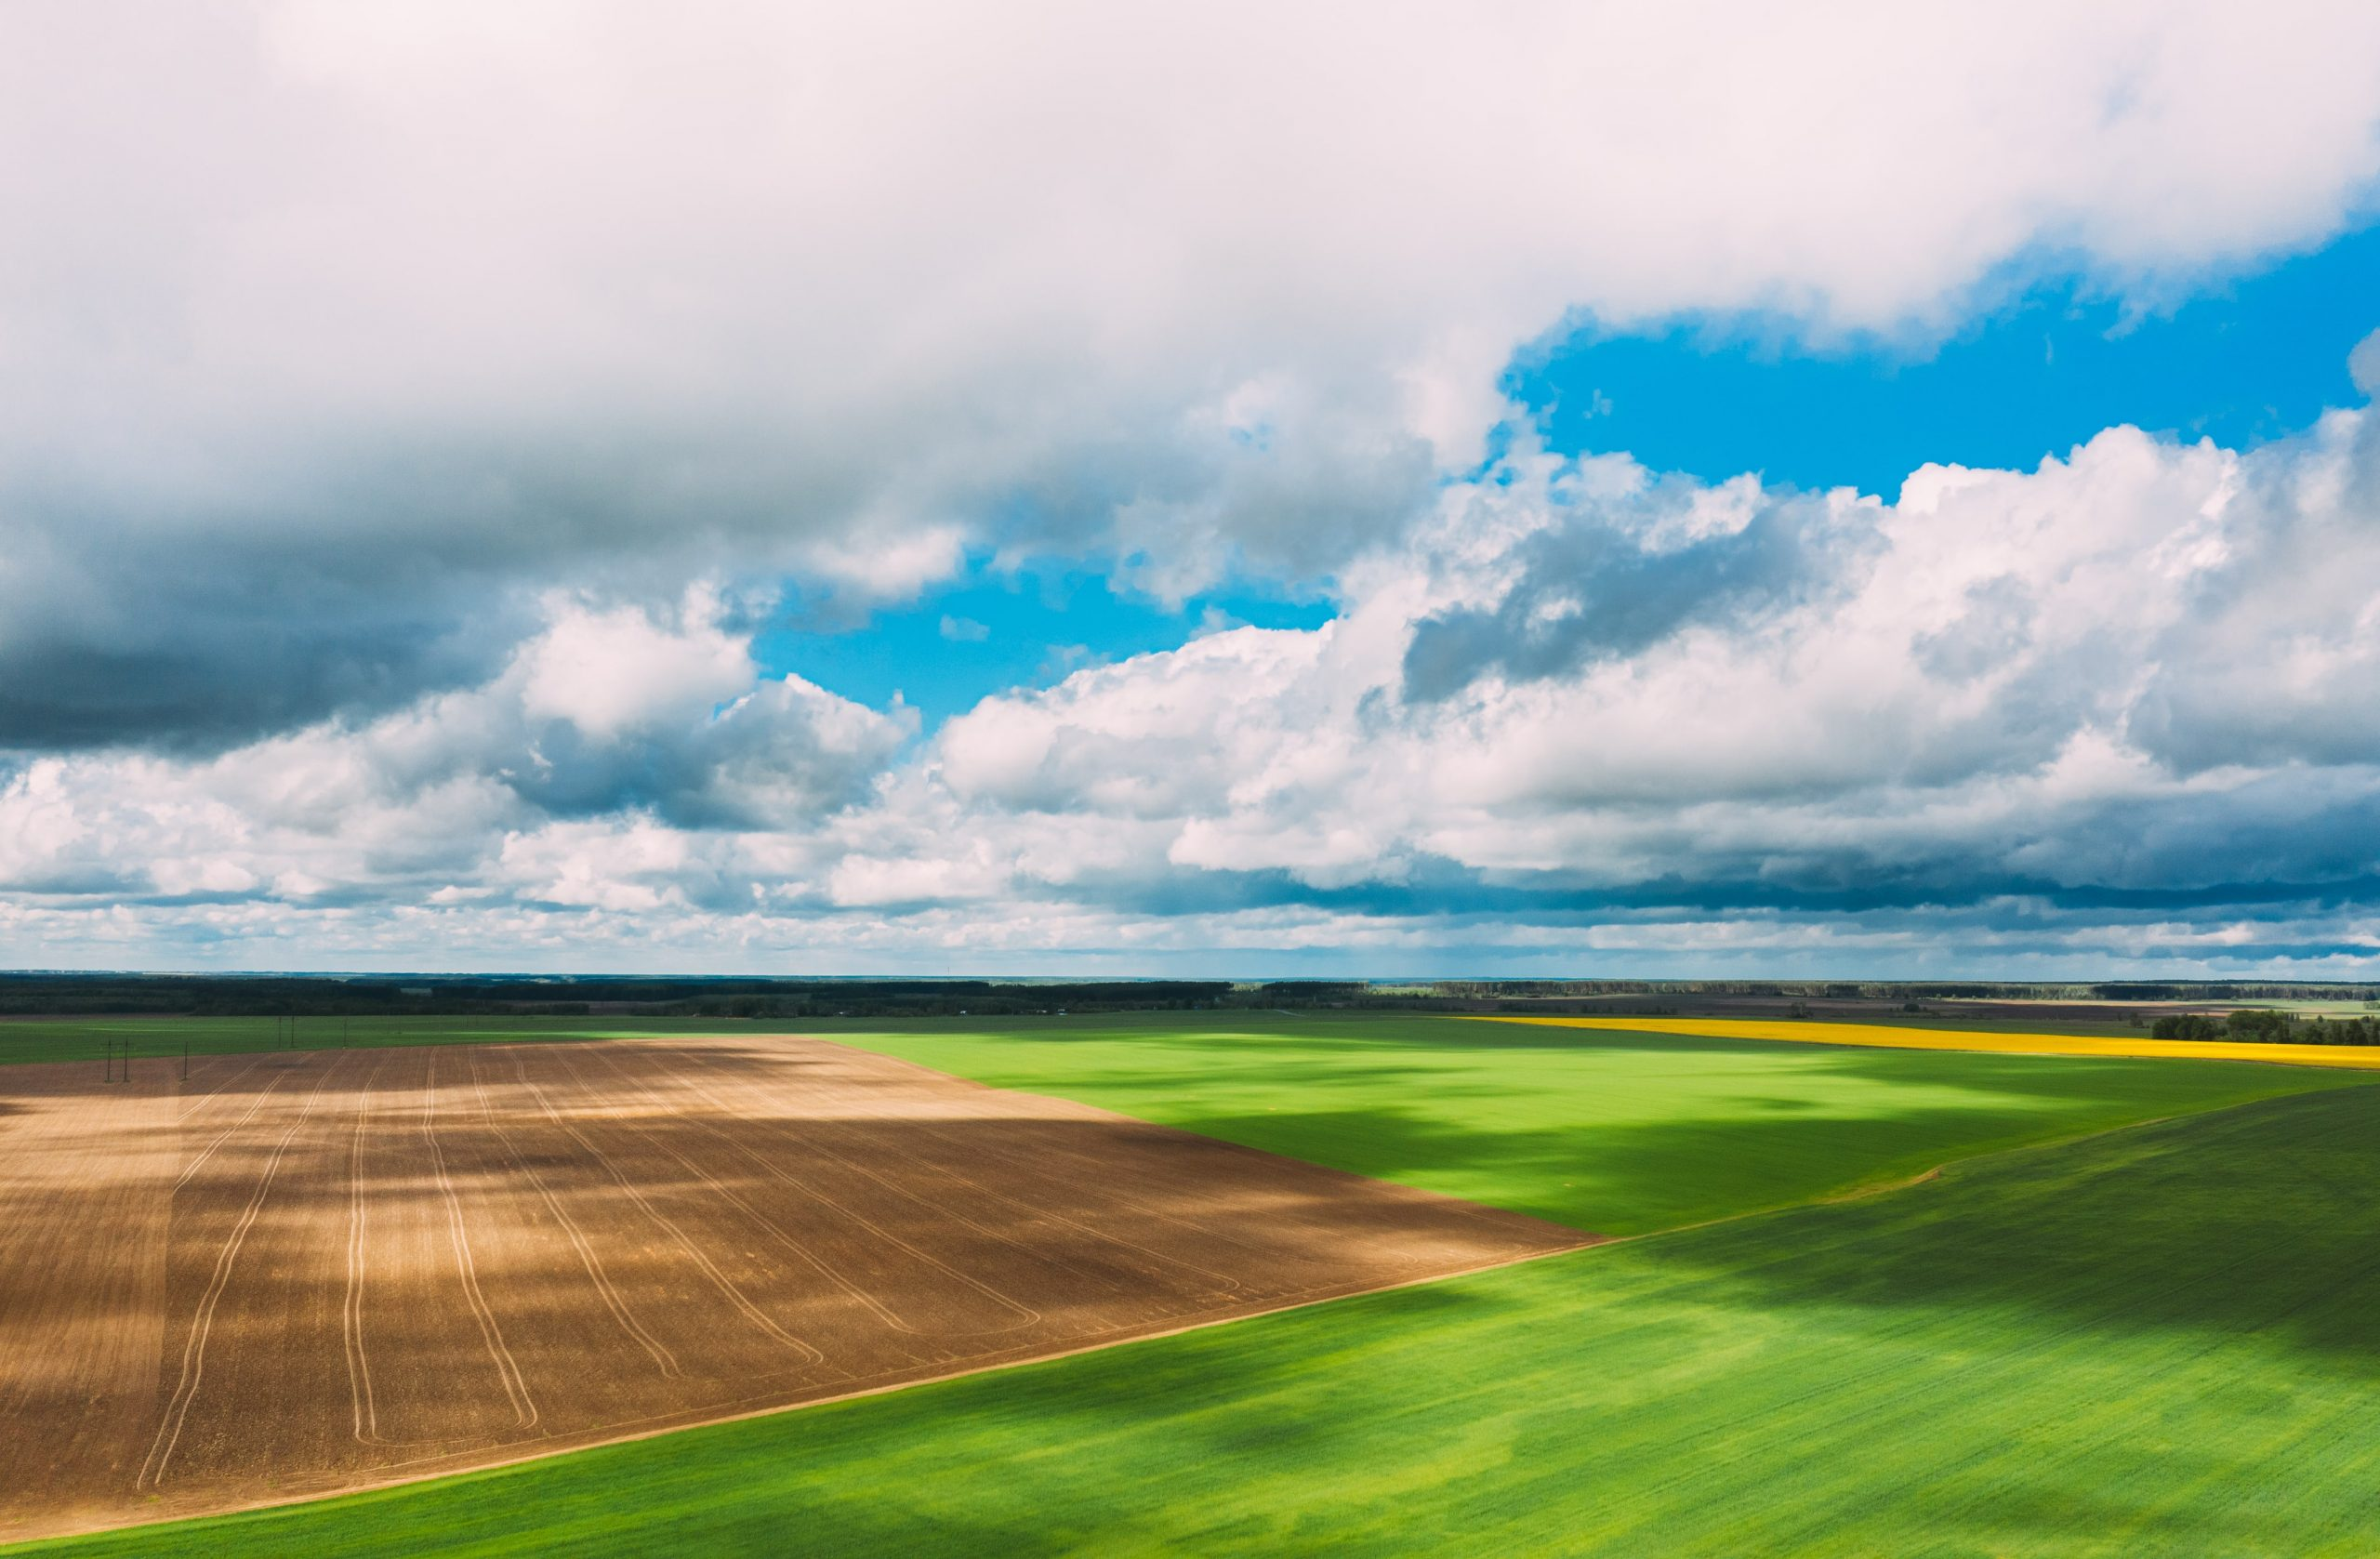 countryside-rural-green-field-landscape-with-young-X5Z2SN5